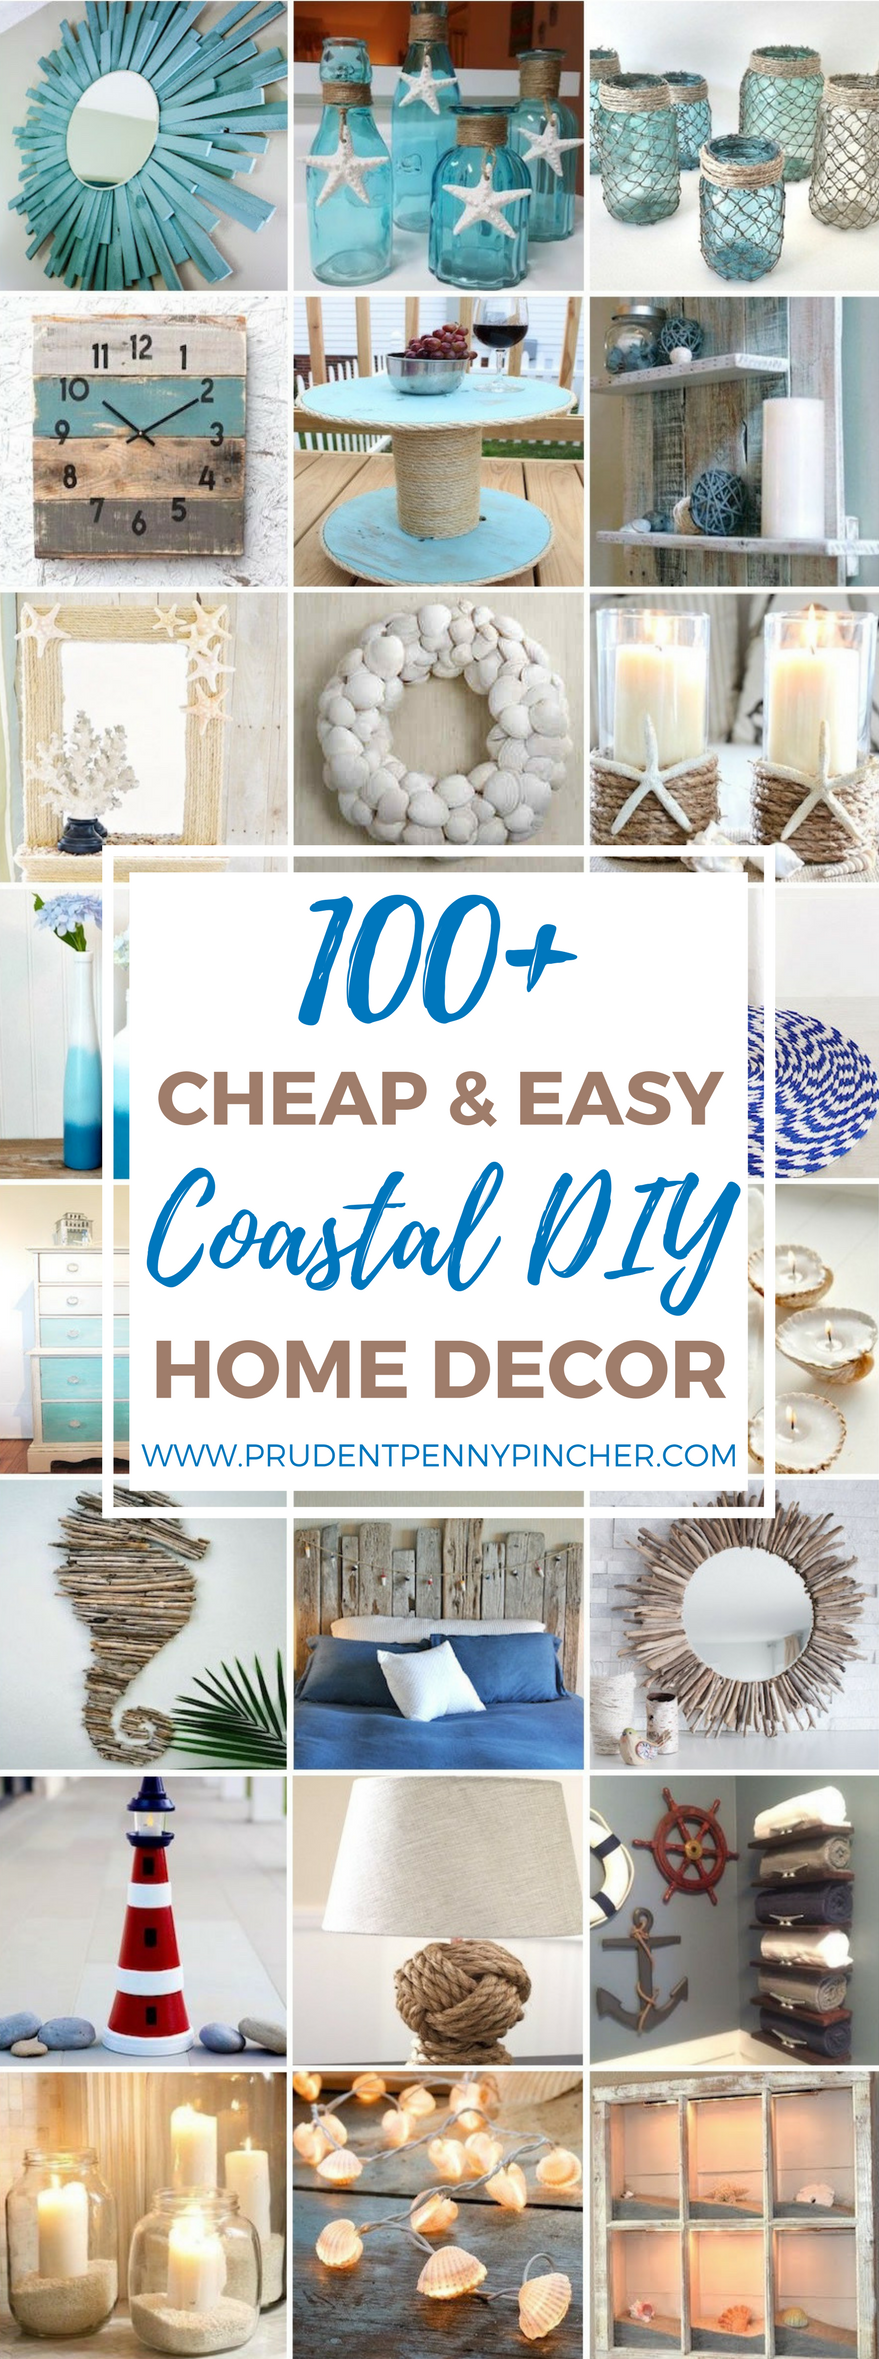 100 Cheap and Easy Coastal DIY Home Decor Ideas - Prudent ...